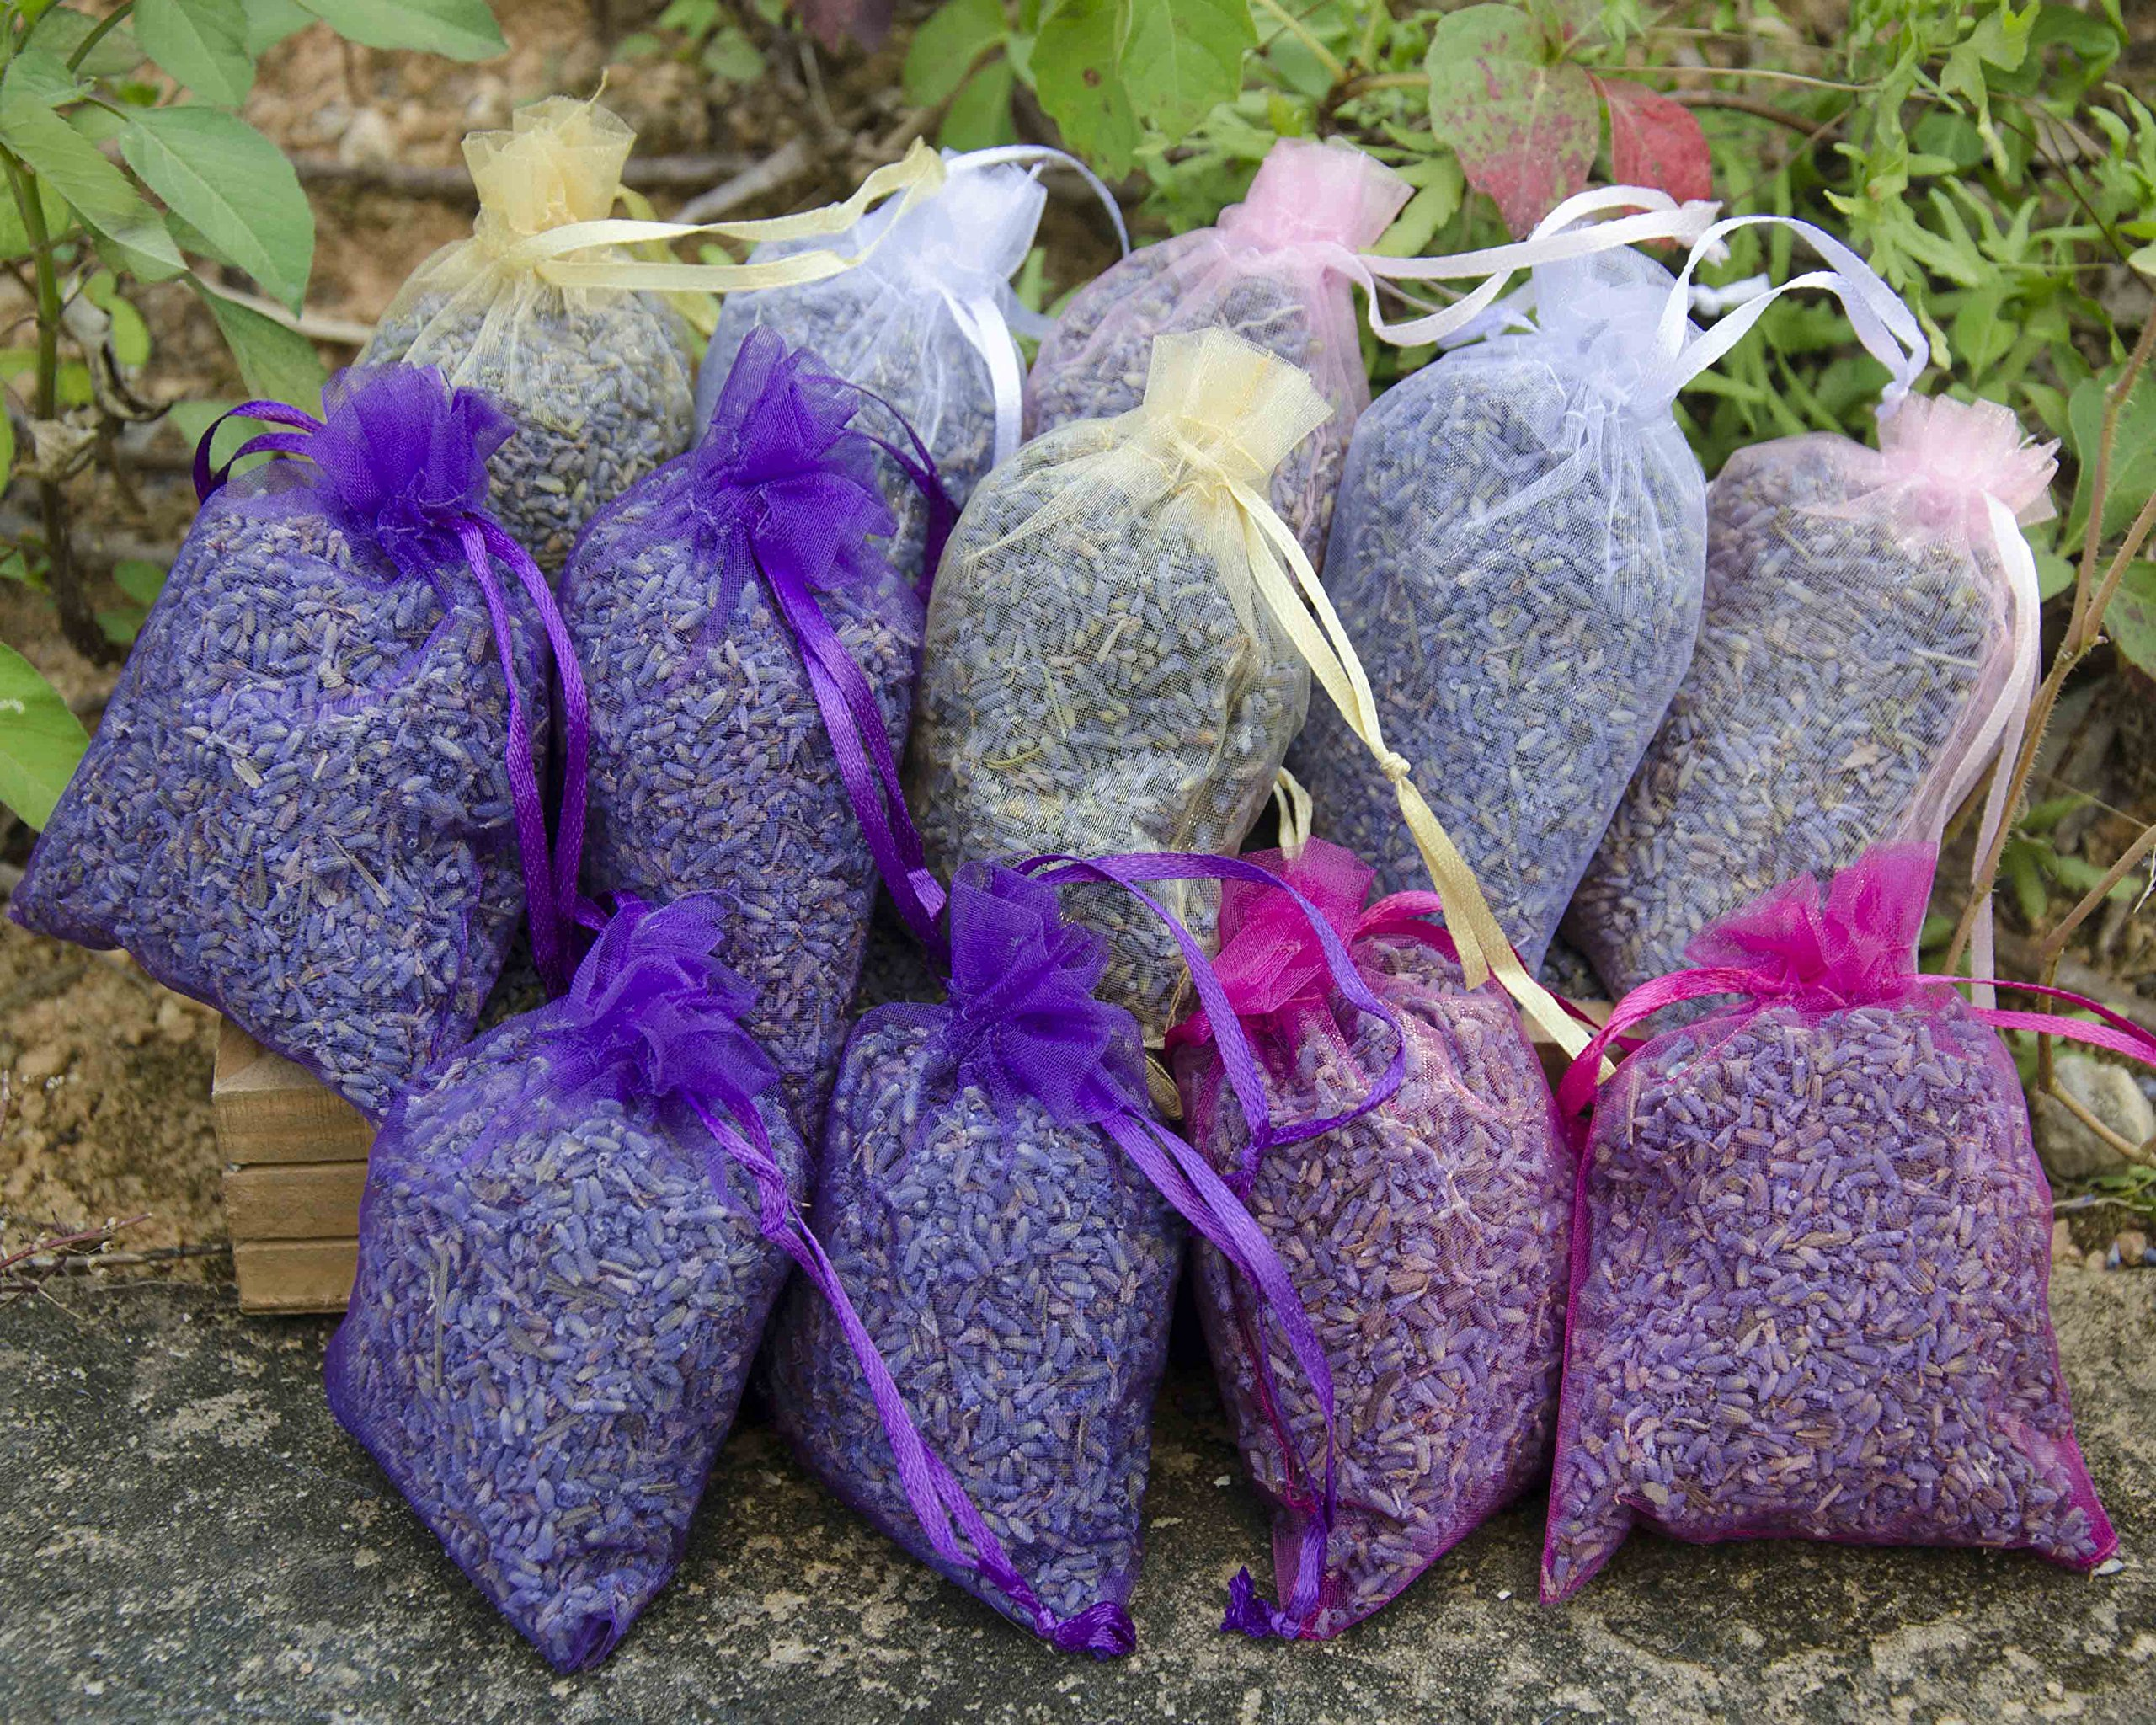 Lavande Sur Terre Pack of 12 Large Lavender Sachets Filled with French Lavender Flower Buds - Natural Deodorizer - Premium Ultra Blue Lavender Flower Buds